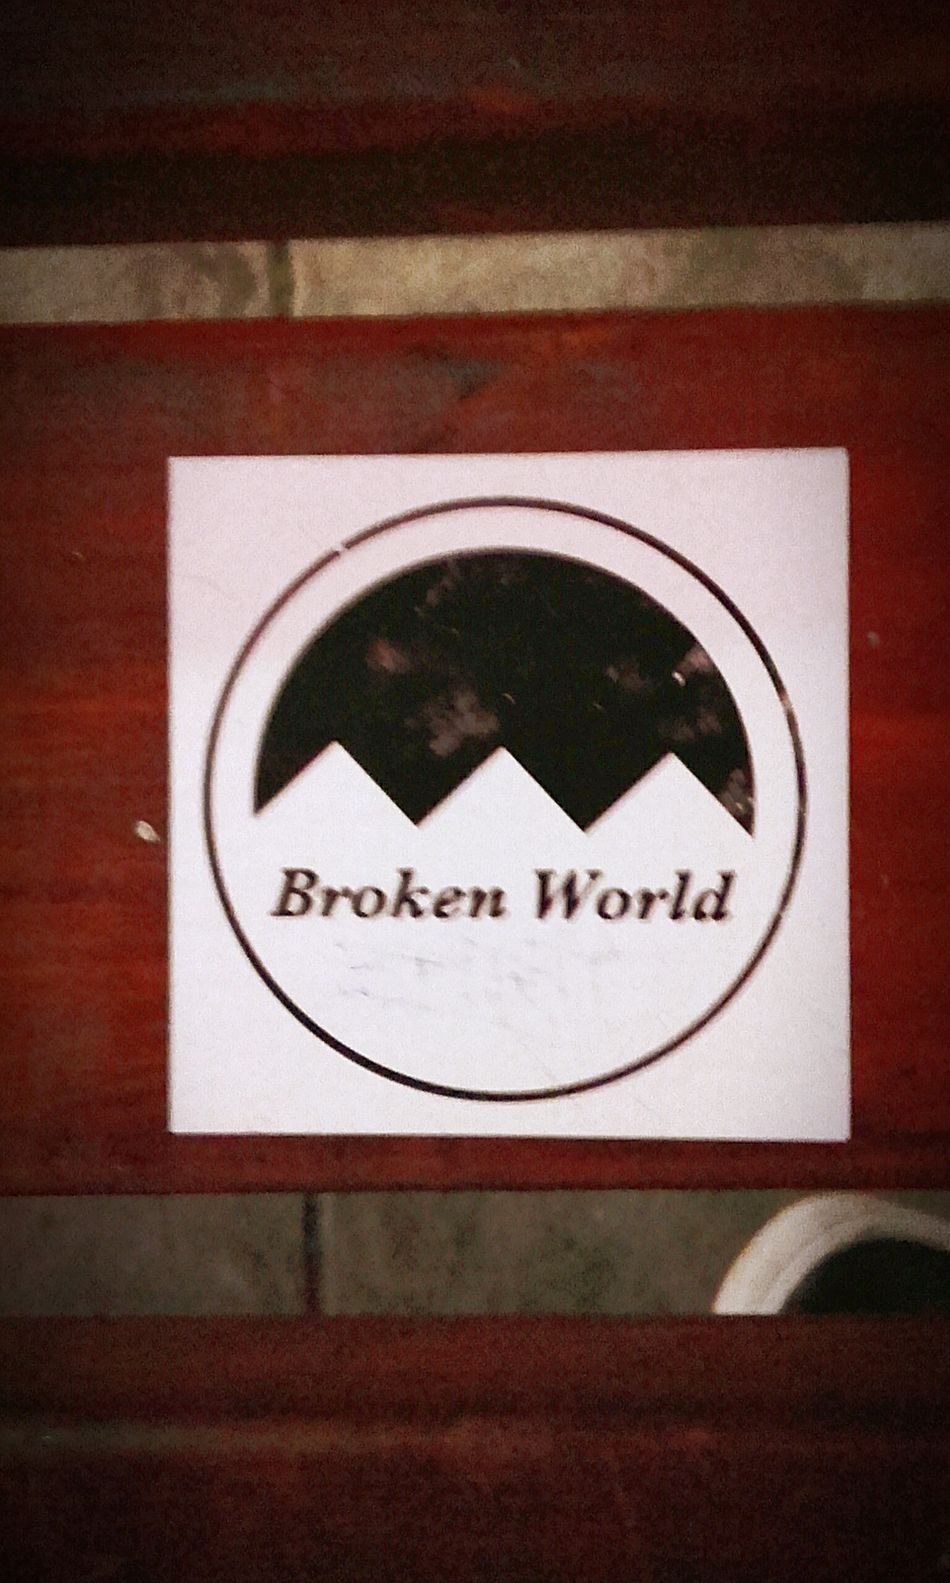 Brokenworld Broken World Sticker Stickerporn Stickers Stickerslapper Stickers And Stickers Sticker Slapper Stickers Stickers Stickers Stickerama Stickerwall Wallsticker Sticker It Stickerbomb Sticker Wall Stickerseverywhere Stickerslap The World Stickered Broken Stickerslappin Wall-stickers Save The World Wall Sticker Stickerslaps